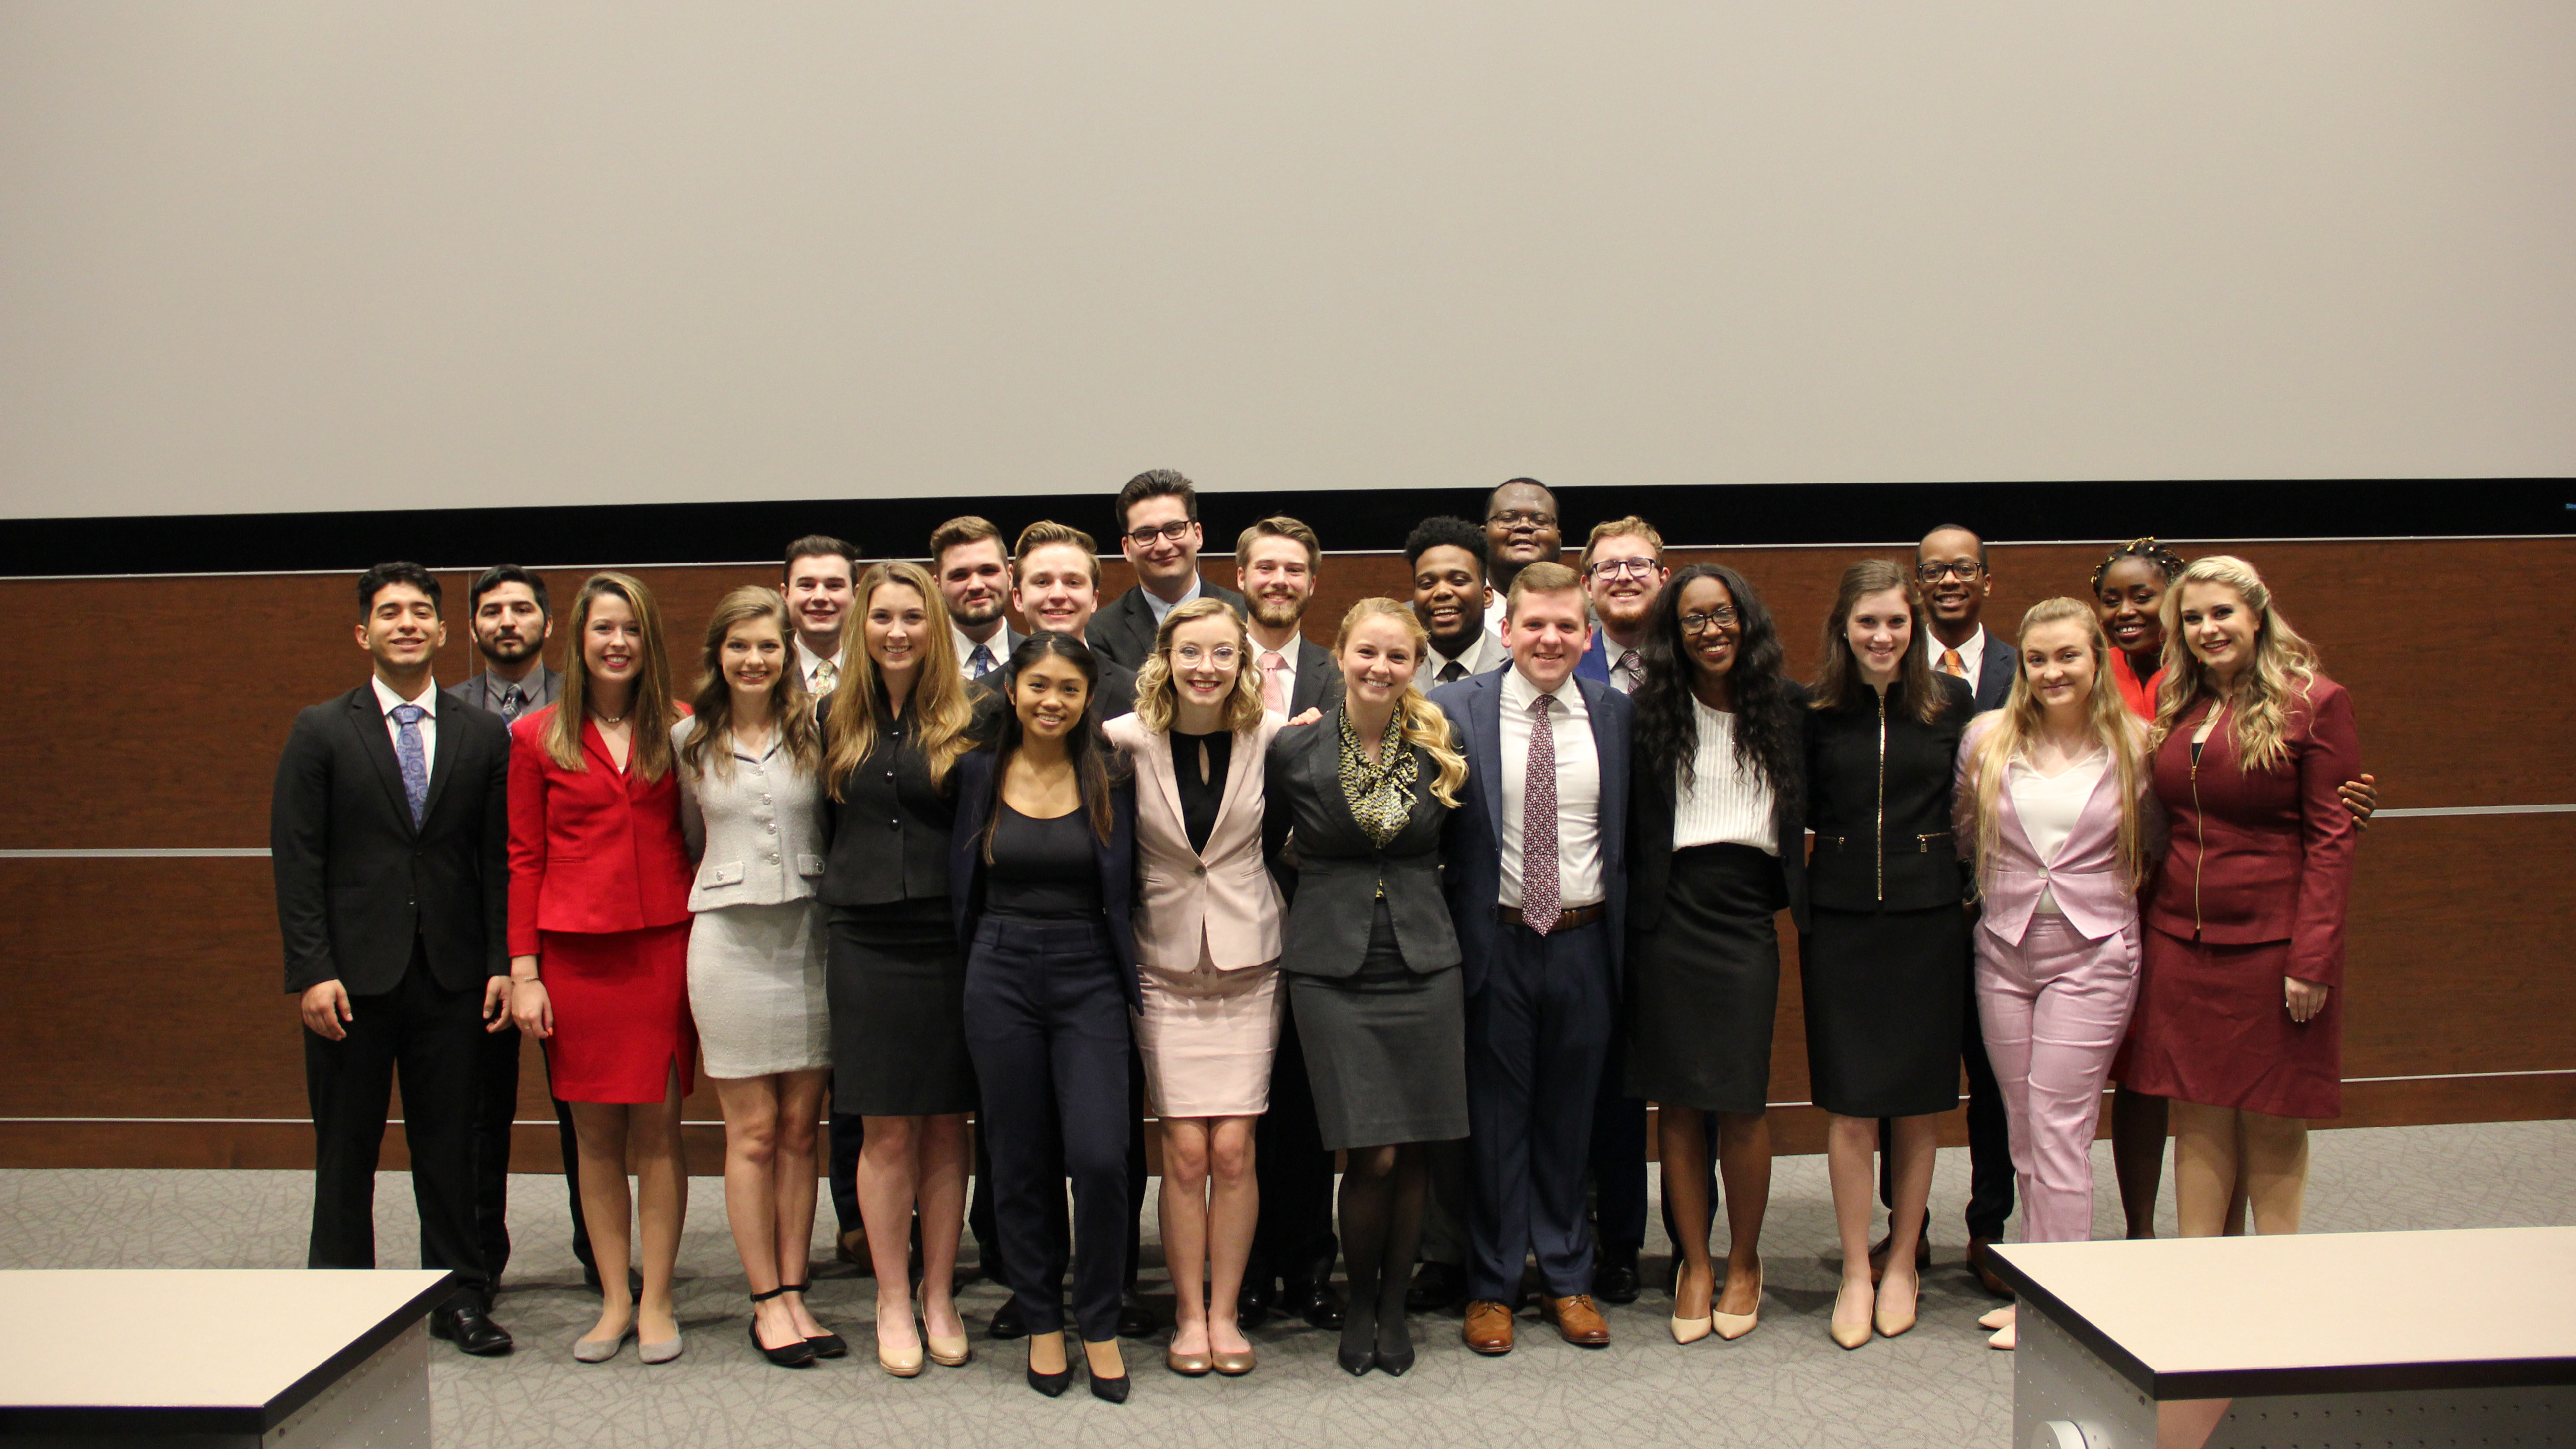 The 2018 Alabama Forensic Council team at last year's Forensics National Showcase.